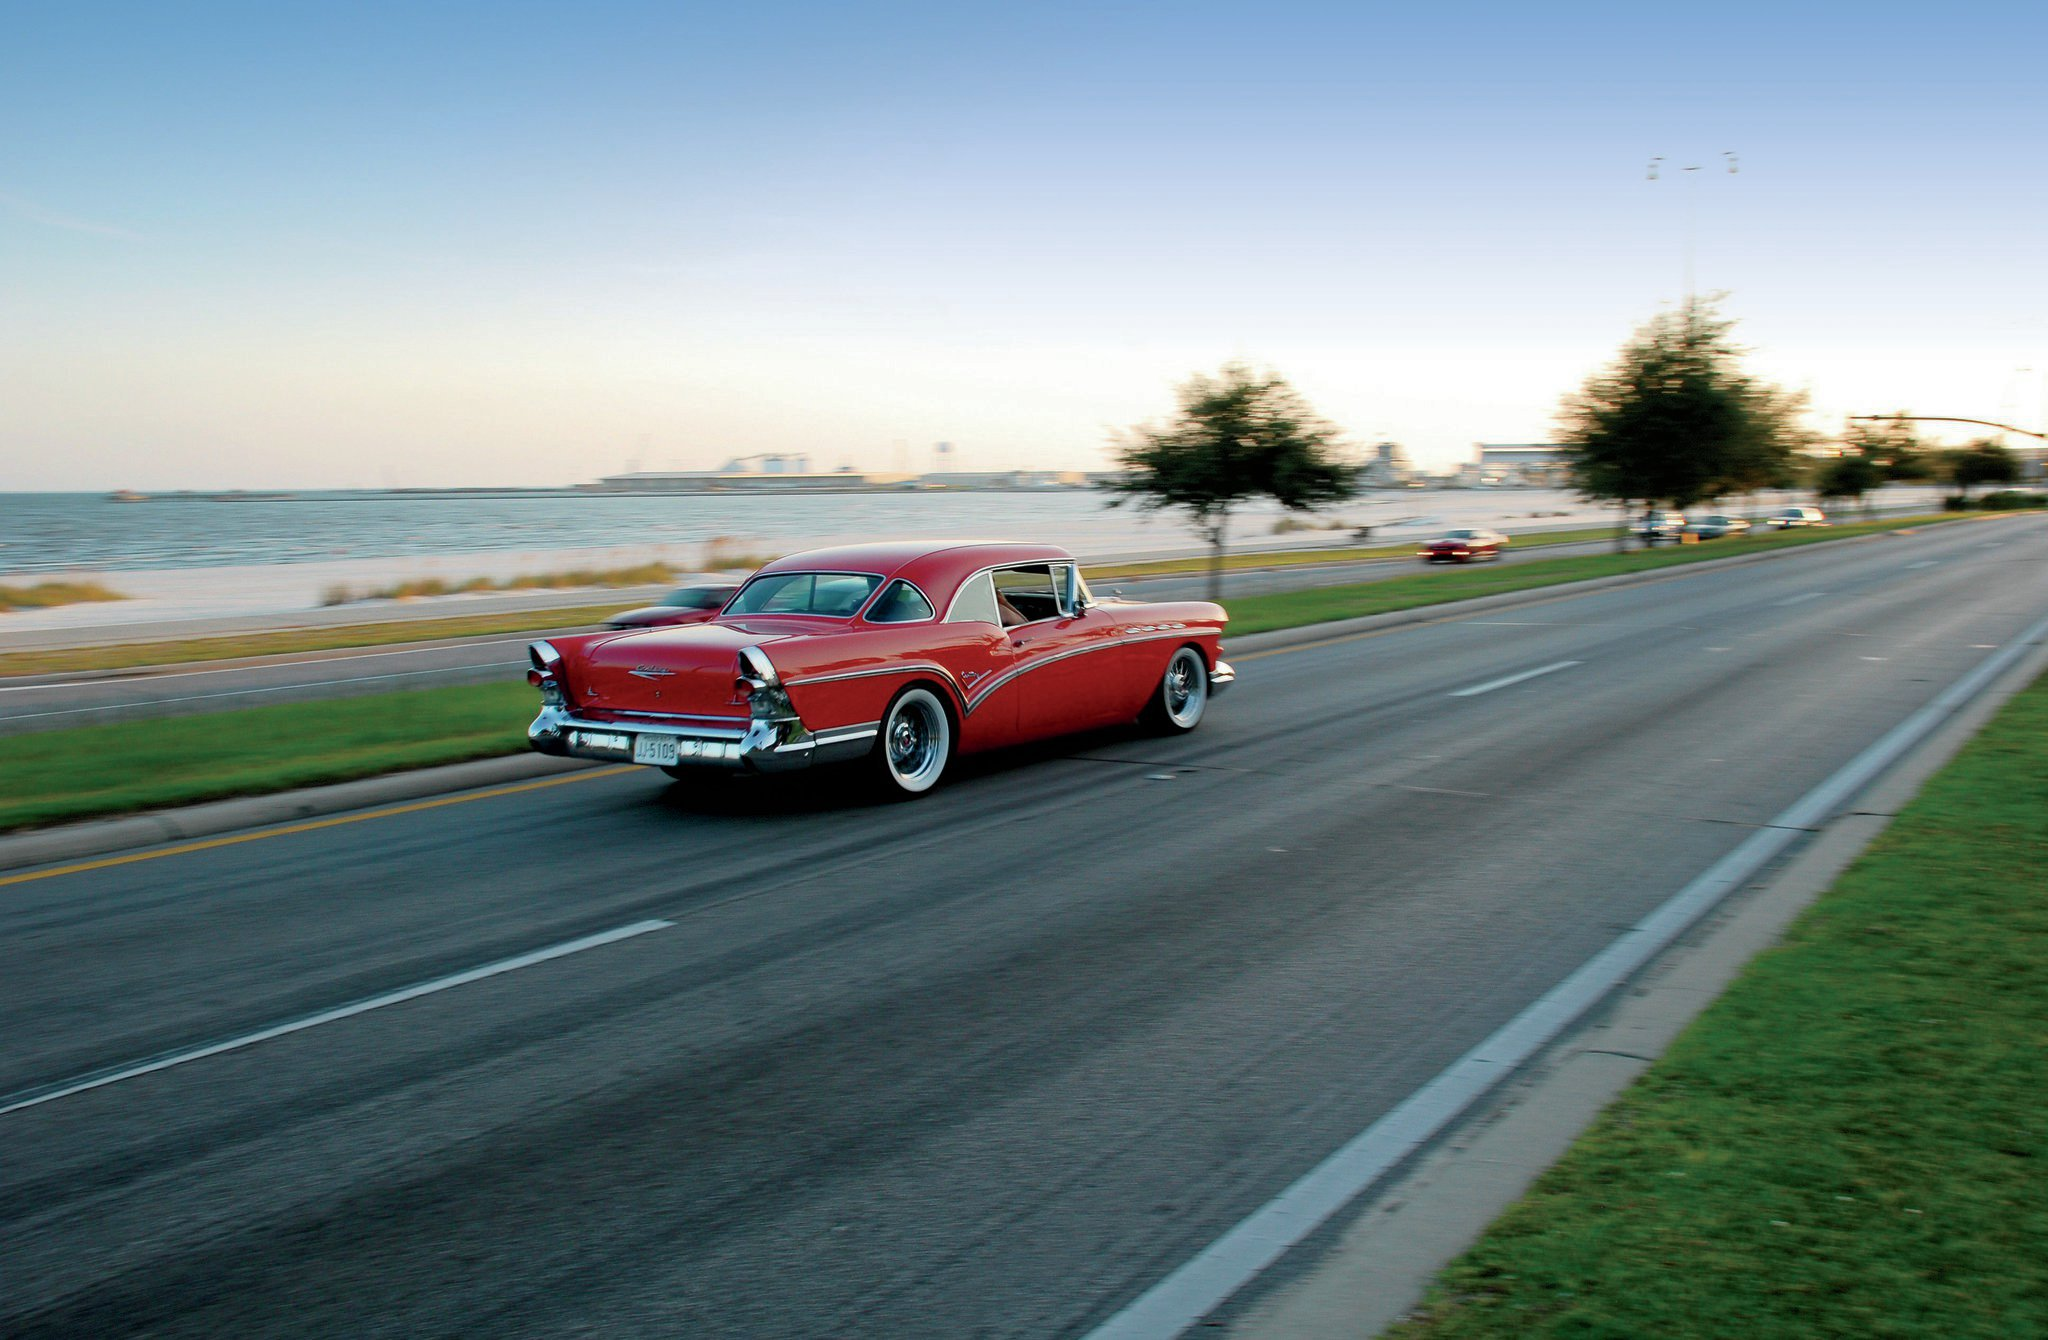 We can think of no better way to spend a warm fall evening than to be cruising down Highway 90 in a bright red '57 Buick hardtop. The rear three-window treatment is an iconic look for both the '57 Buick and Oldsmobile.